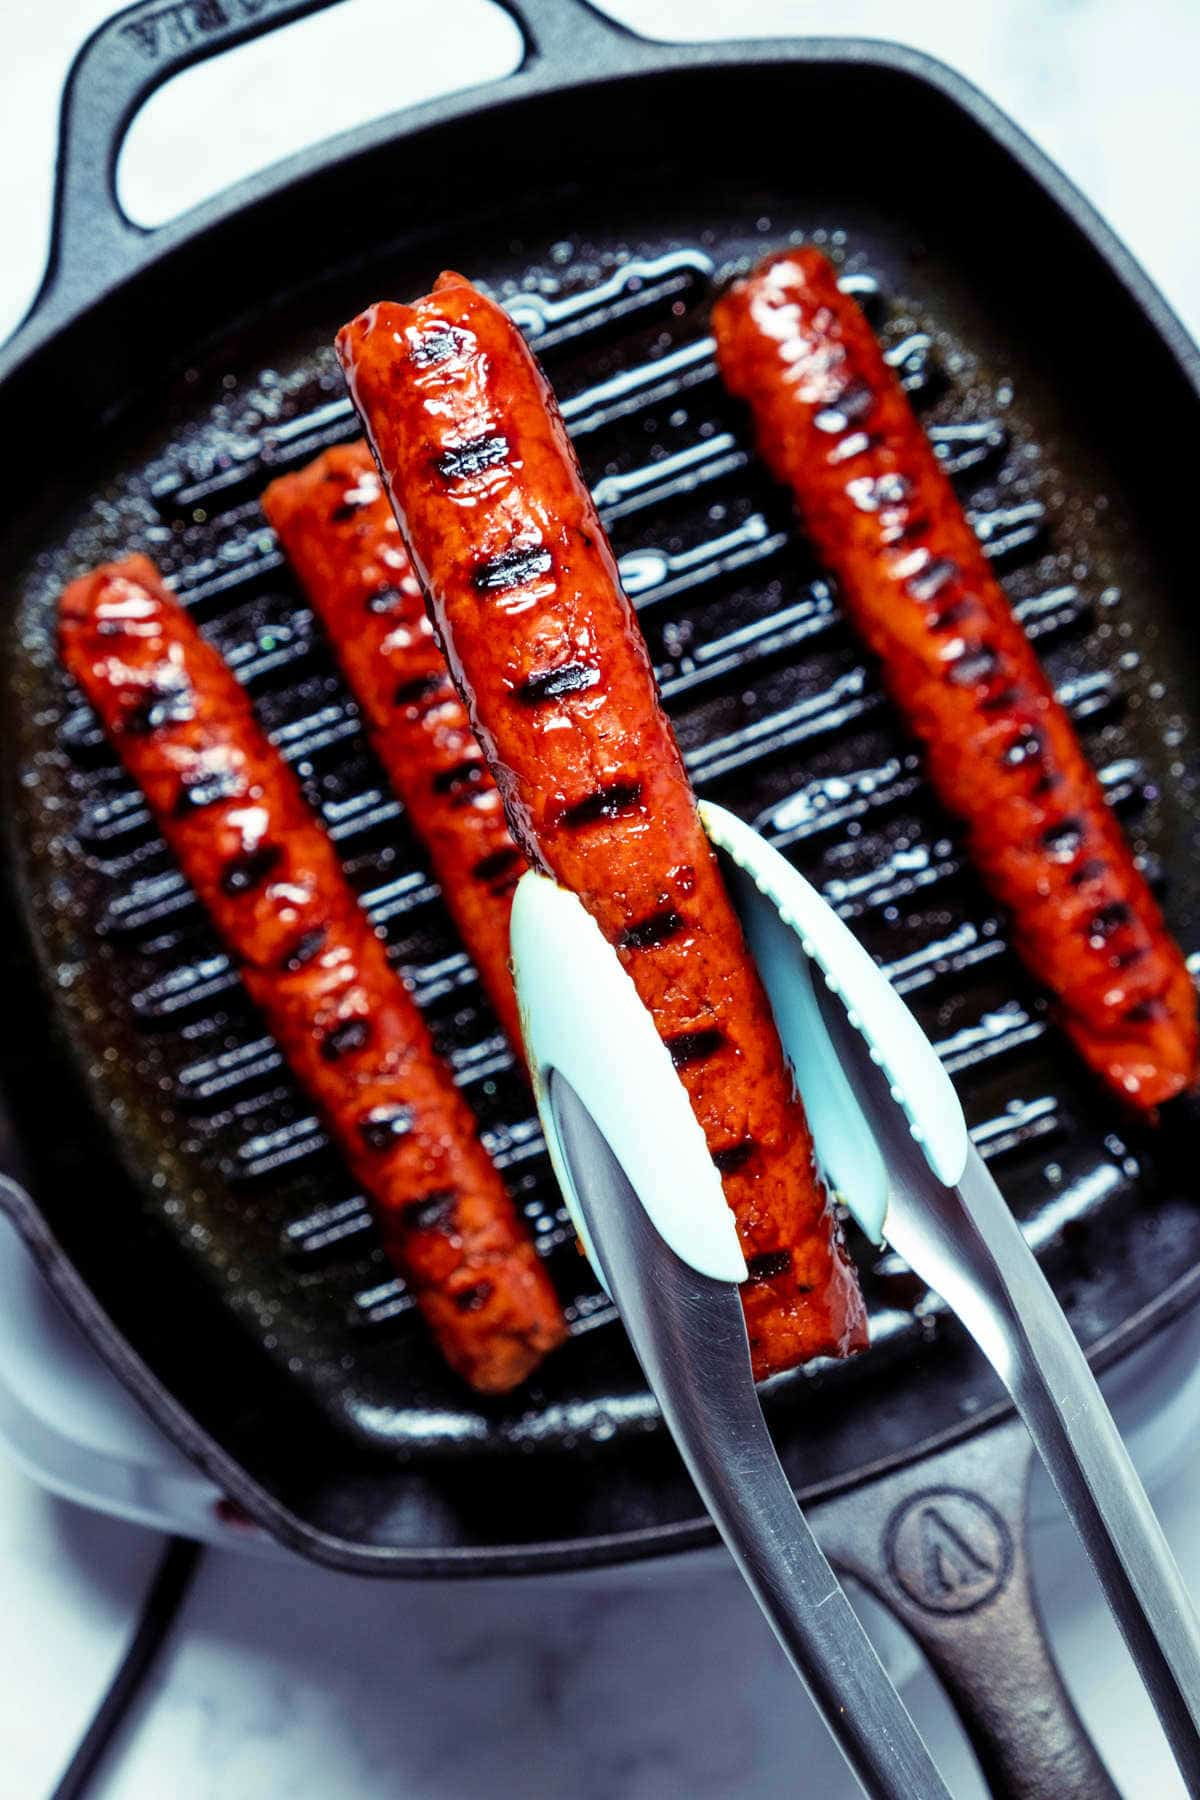 Photo of a sausage being lifted out of a grill pan with tongs.